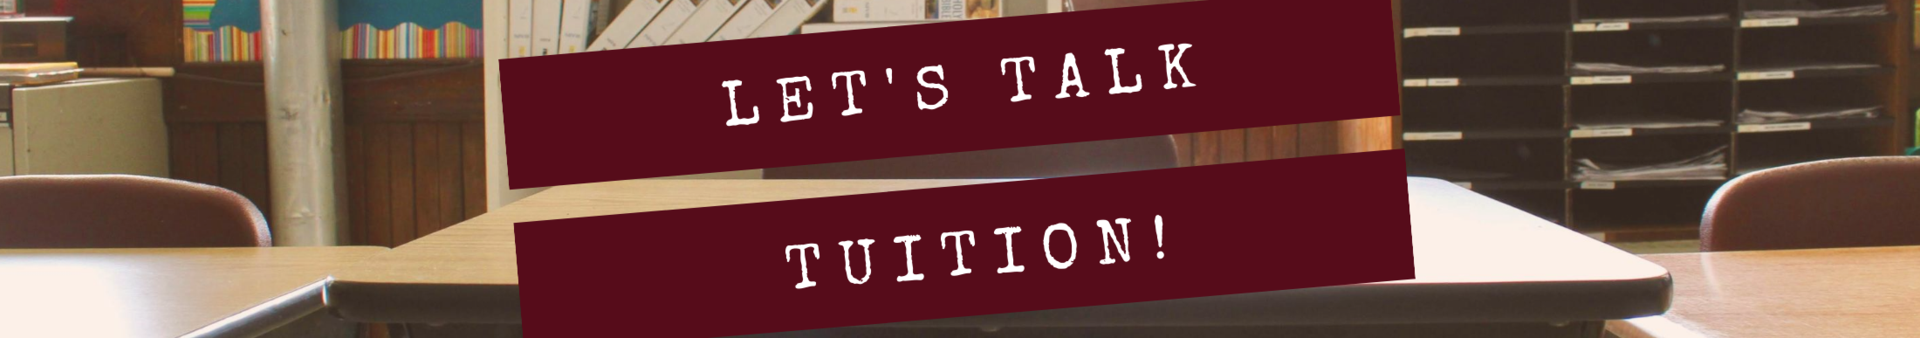 Let's talk tuition!